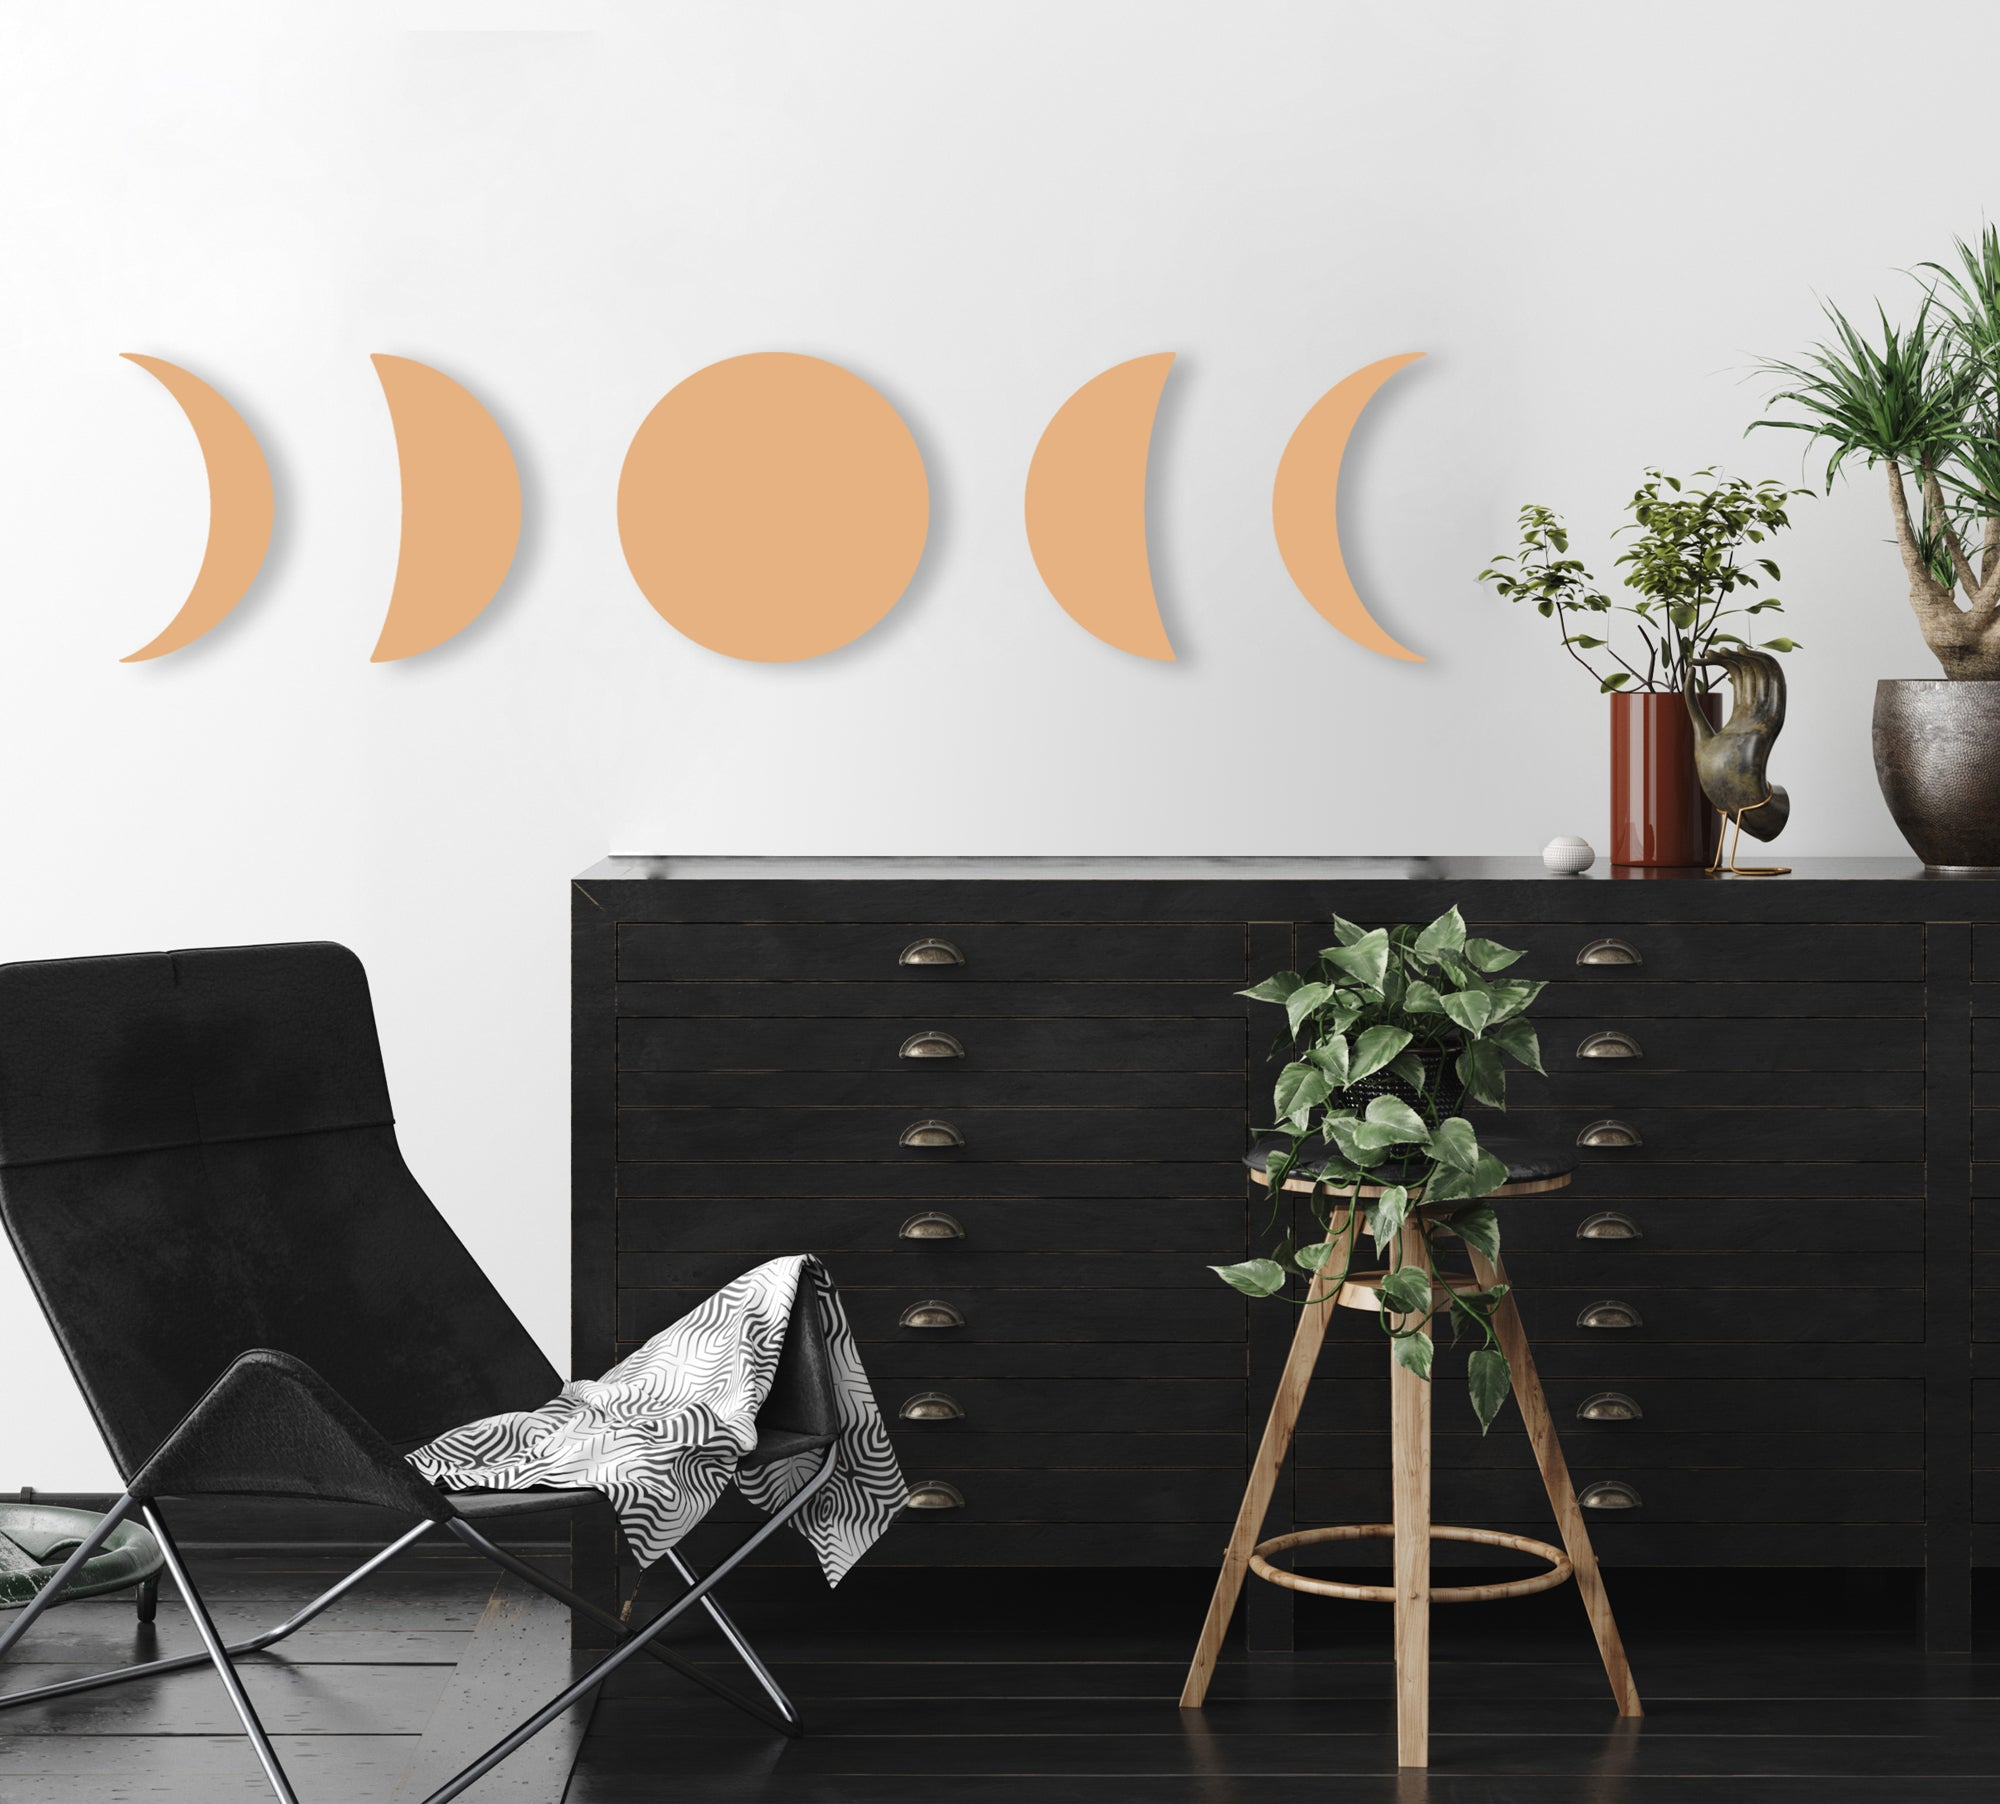 Phases of the Moon (Neutral) (Die Cut) by Rudie Lee